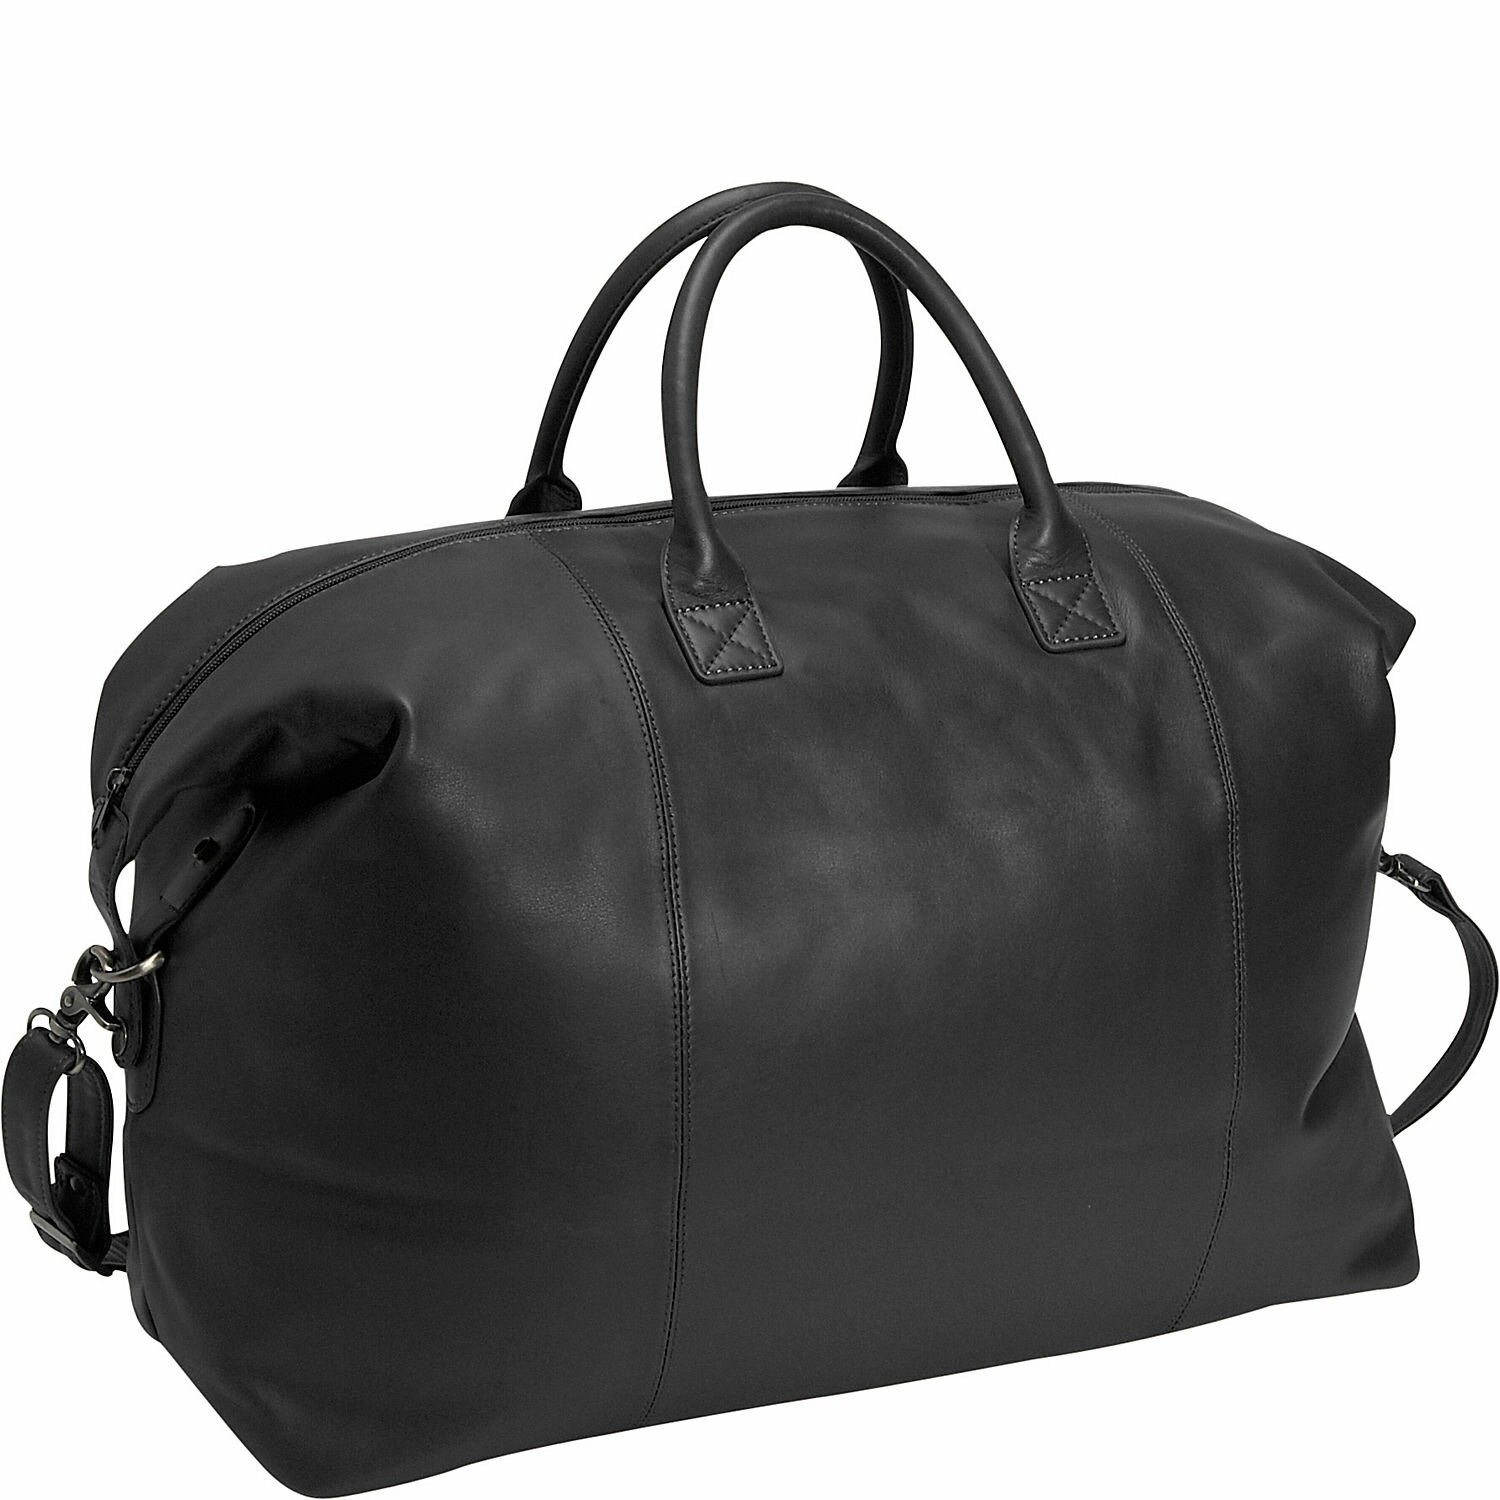 Royce Leather Royce Leather Travel Duffel Overnight Bag in Genuine ...